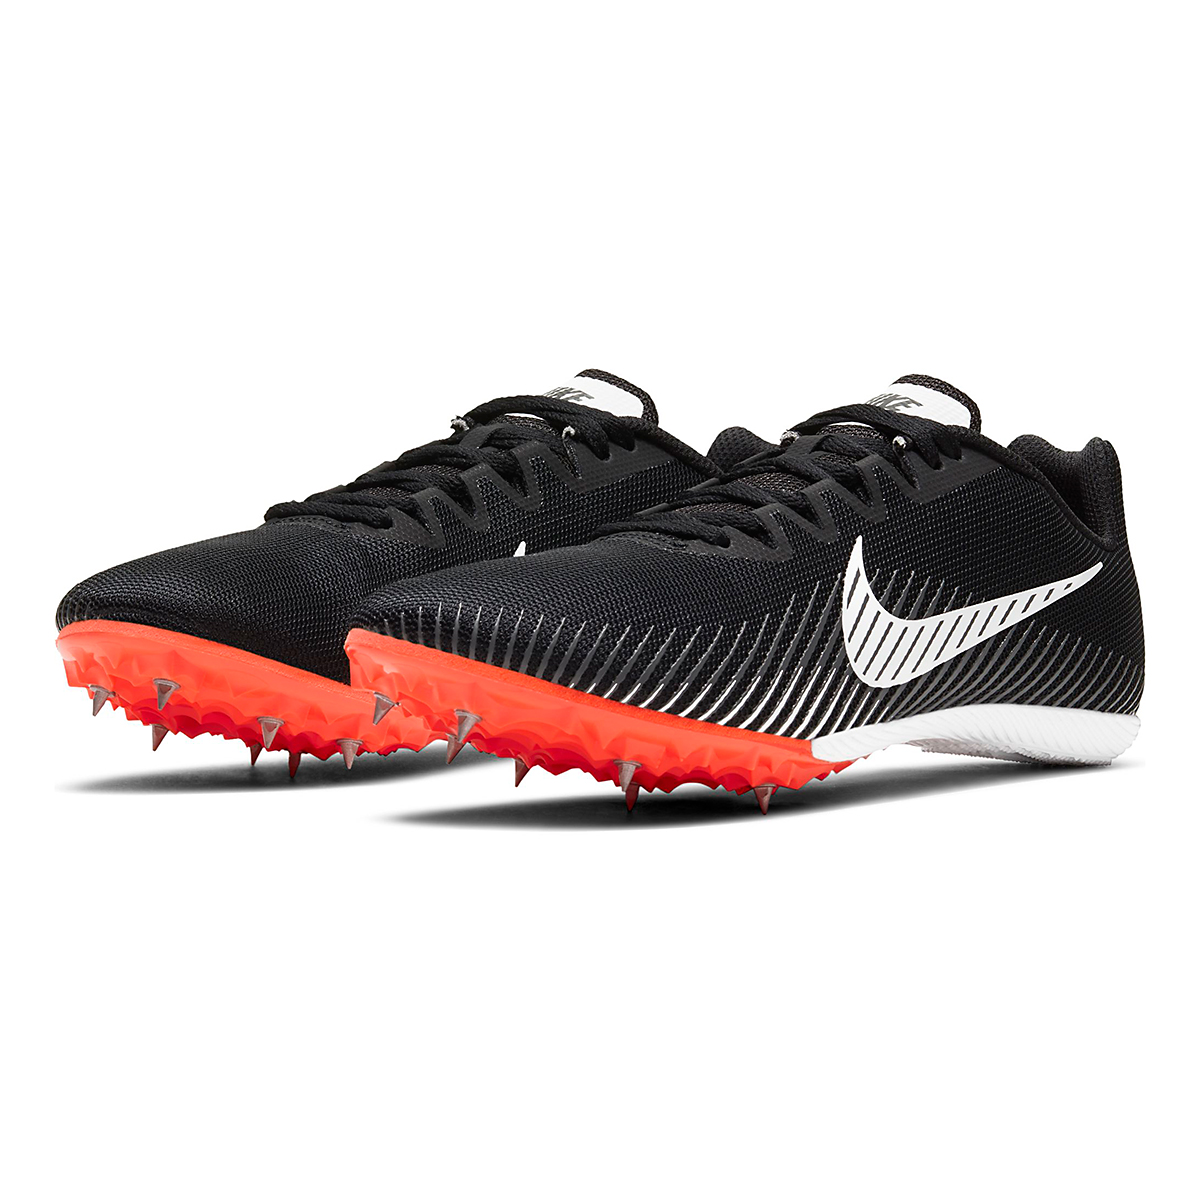 Nike Zoom Rival M 9 Track Spikes - Color: Black/White/Iron Grey/Hyper Crimson - Size: M4/W5.5 - Width: Regular, Black/White/Iron Grey/Hyper Crimson, large, image 5